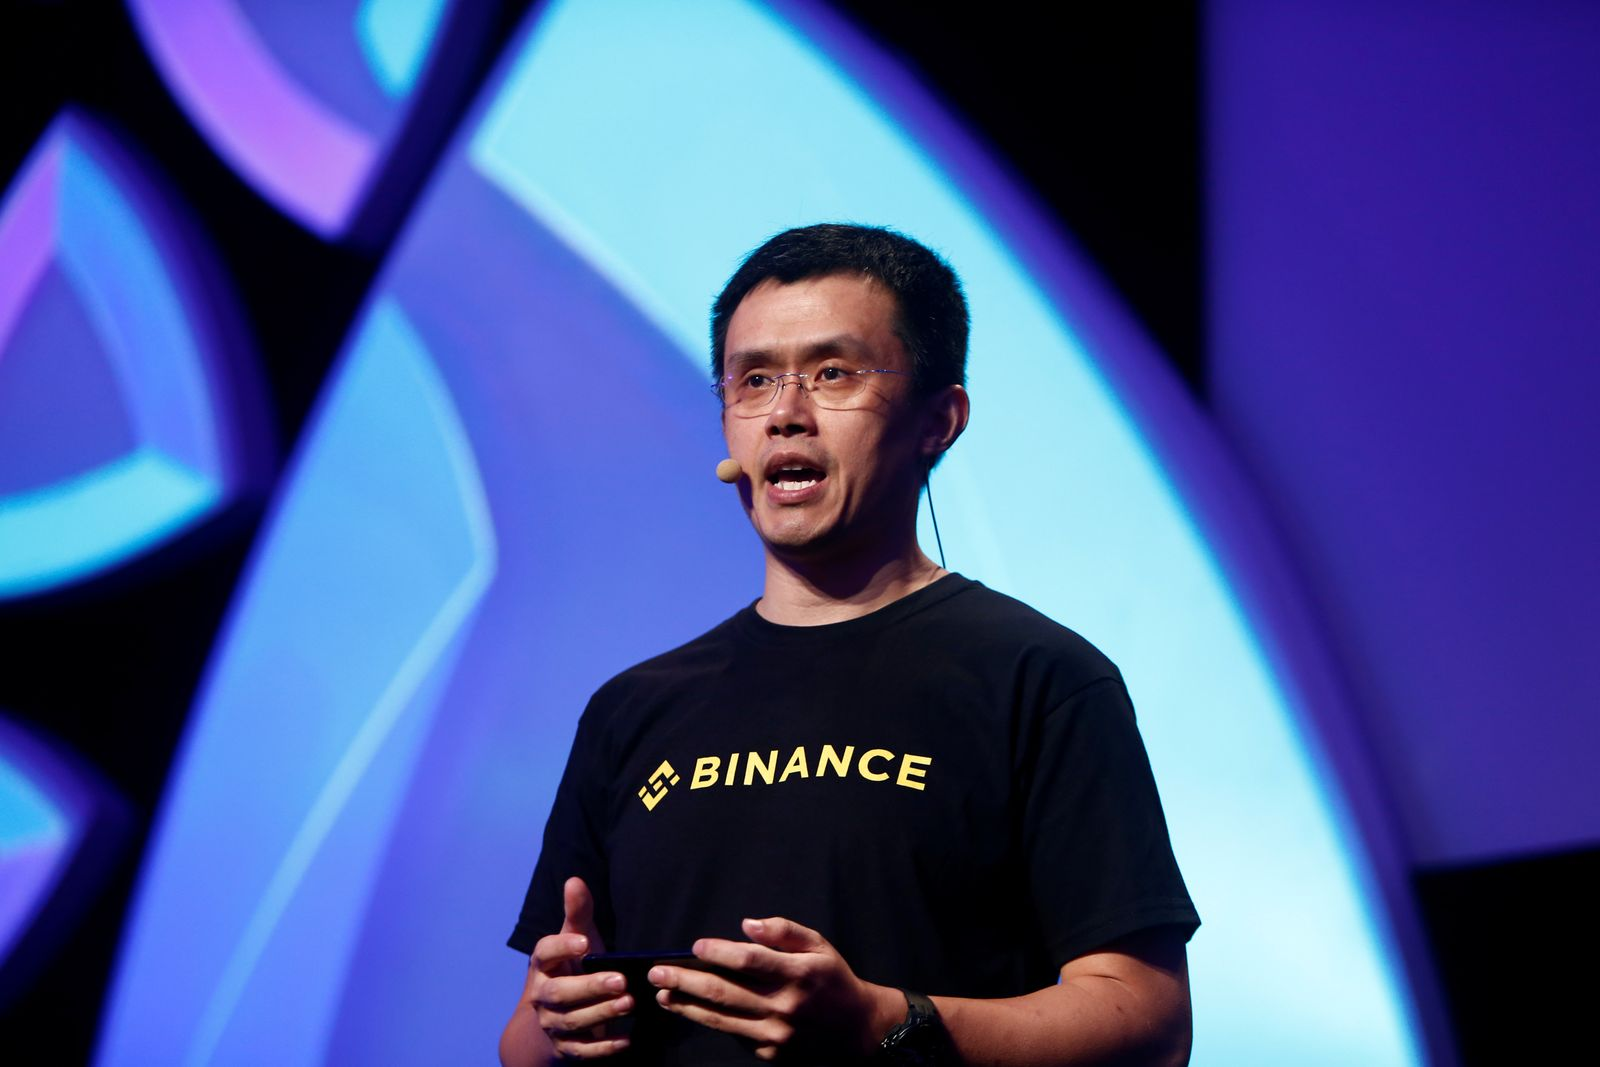 Changpeng Zhao, CEO of Binance, speaks at the Delta Summit, Malta's official Blockchain and Digital Innovation event promoting cryptocurrency, in St Julian's